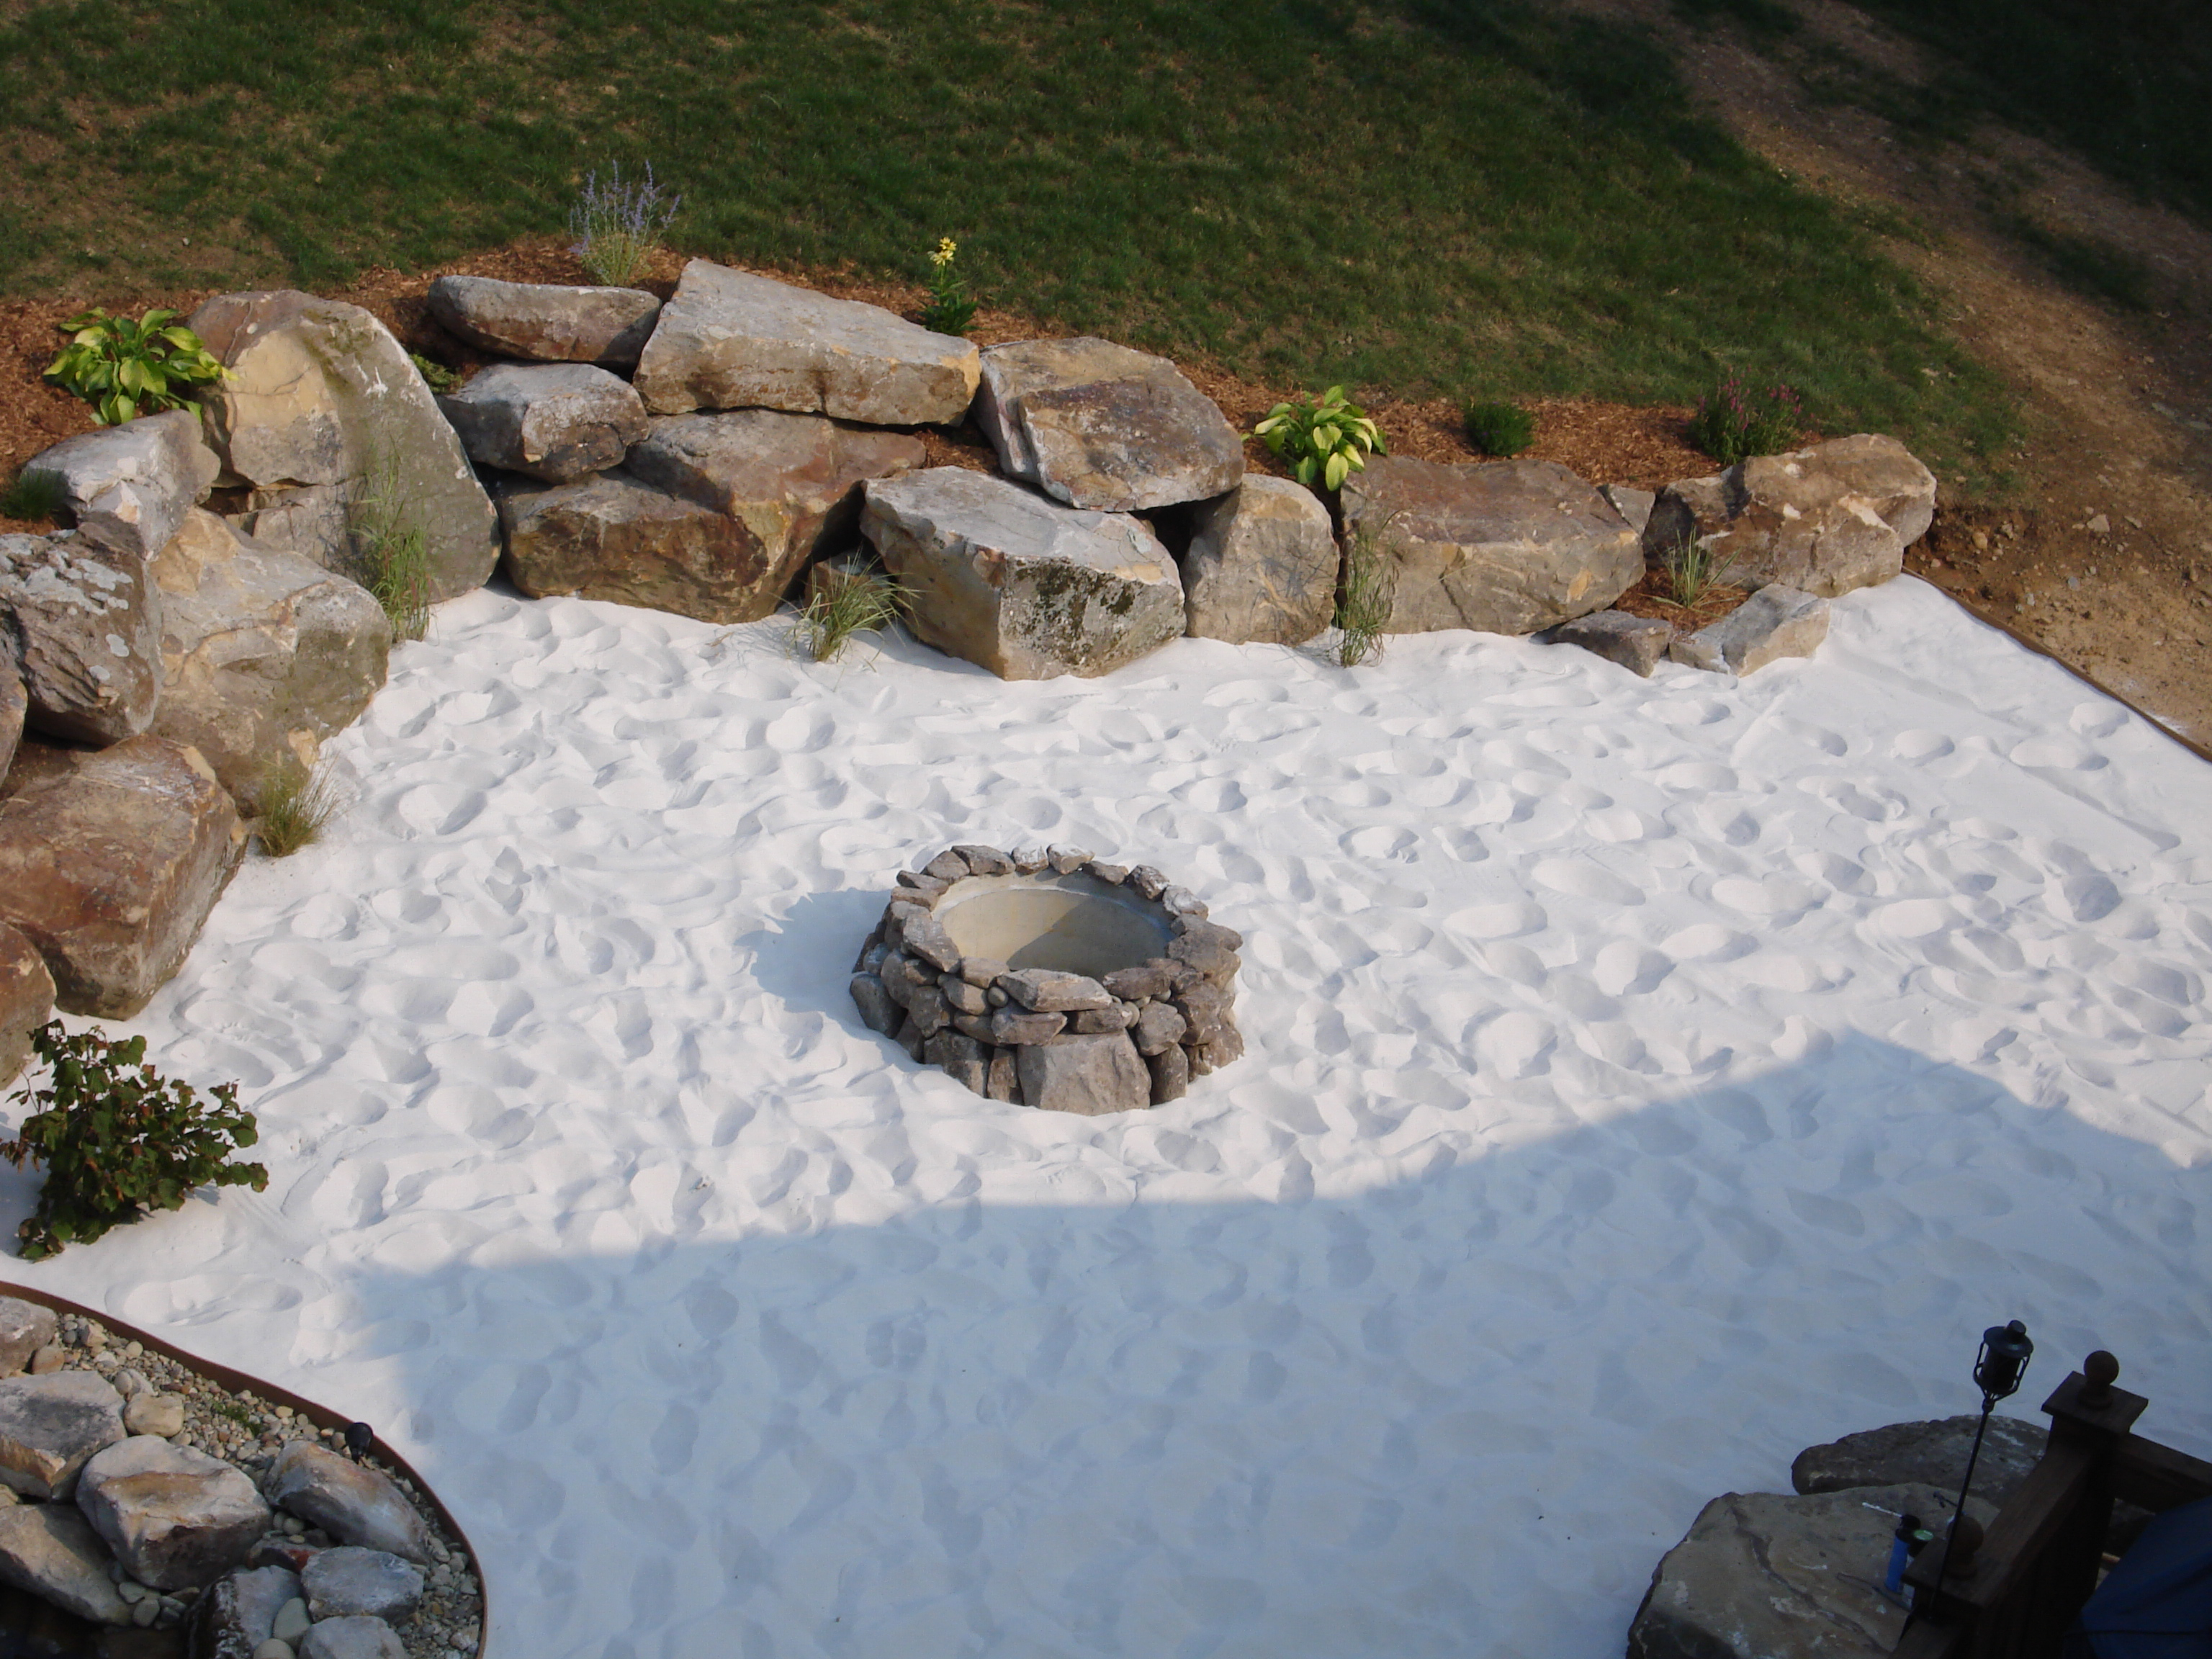 Beach Sand Patio With Fire Pit